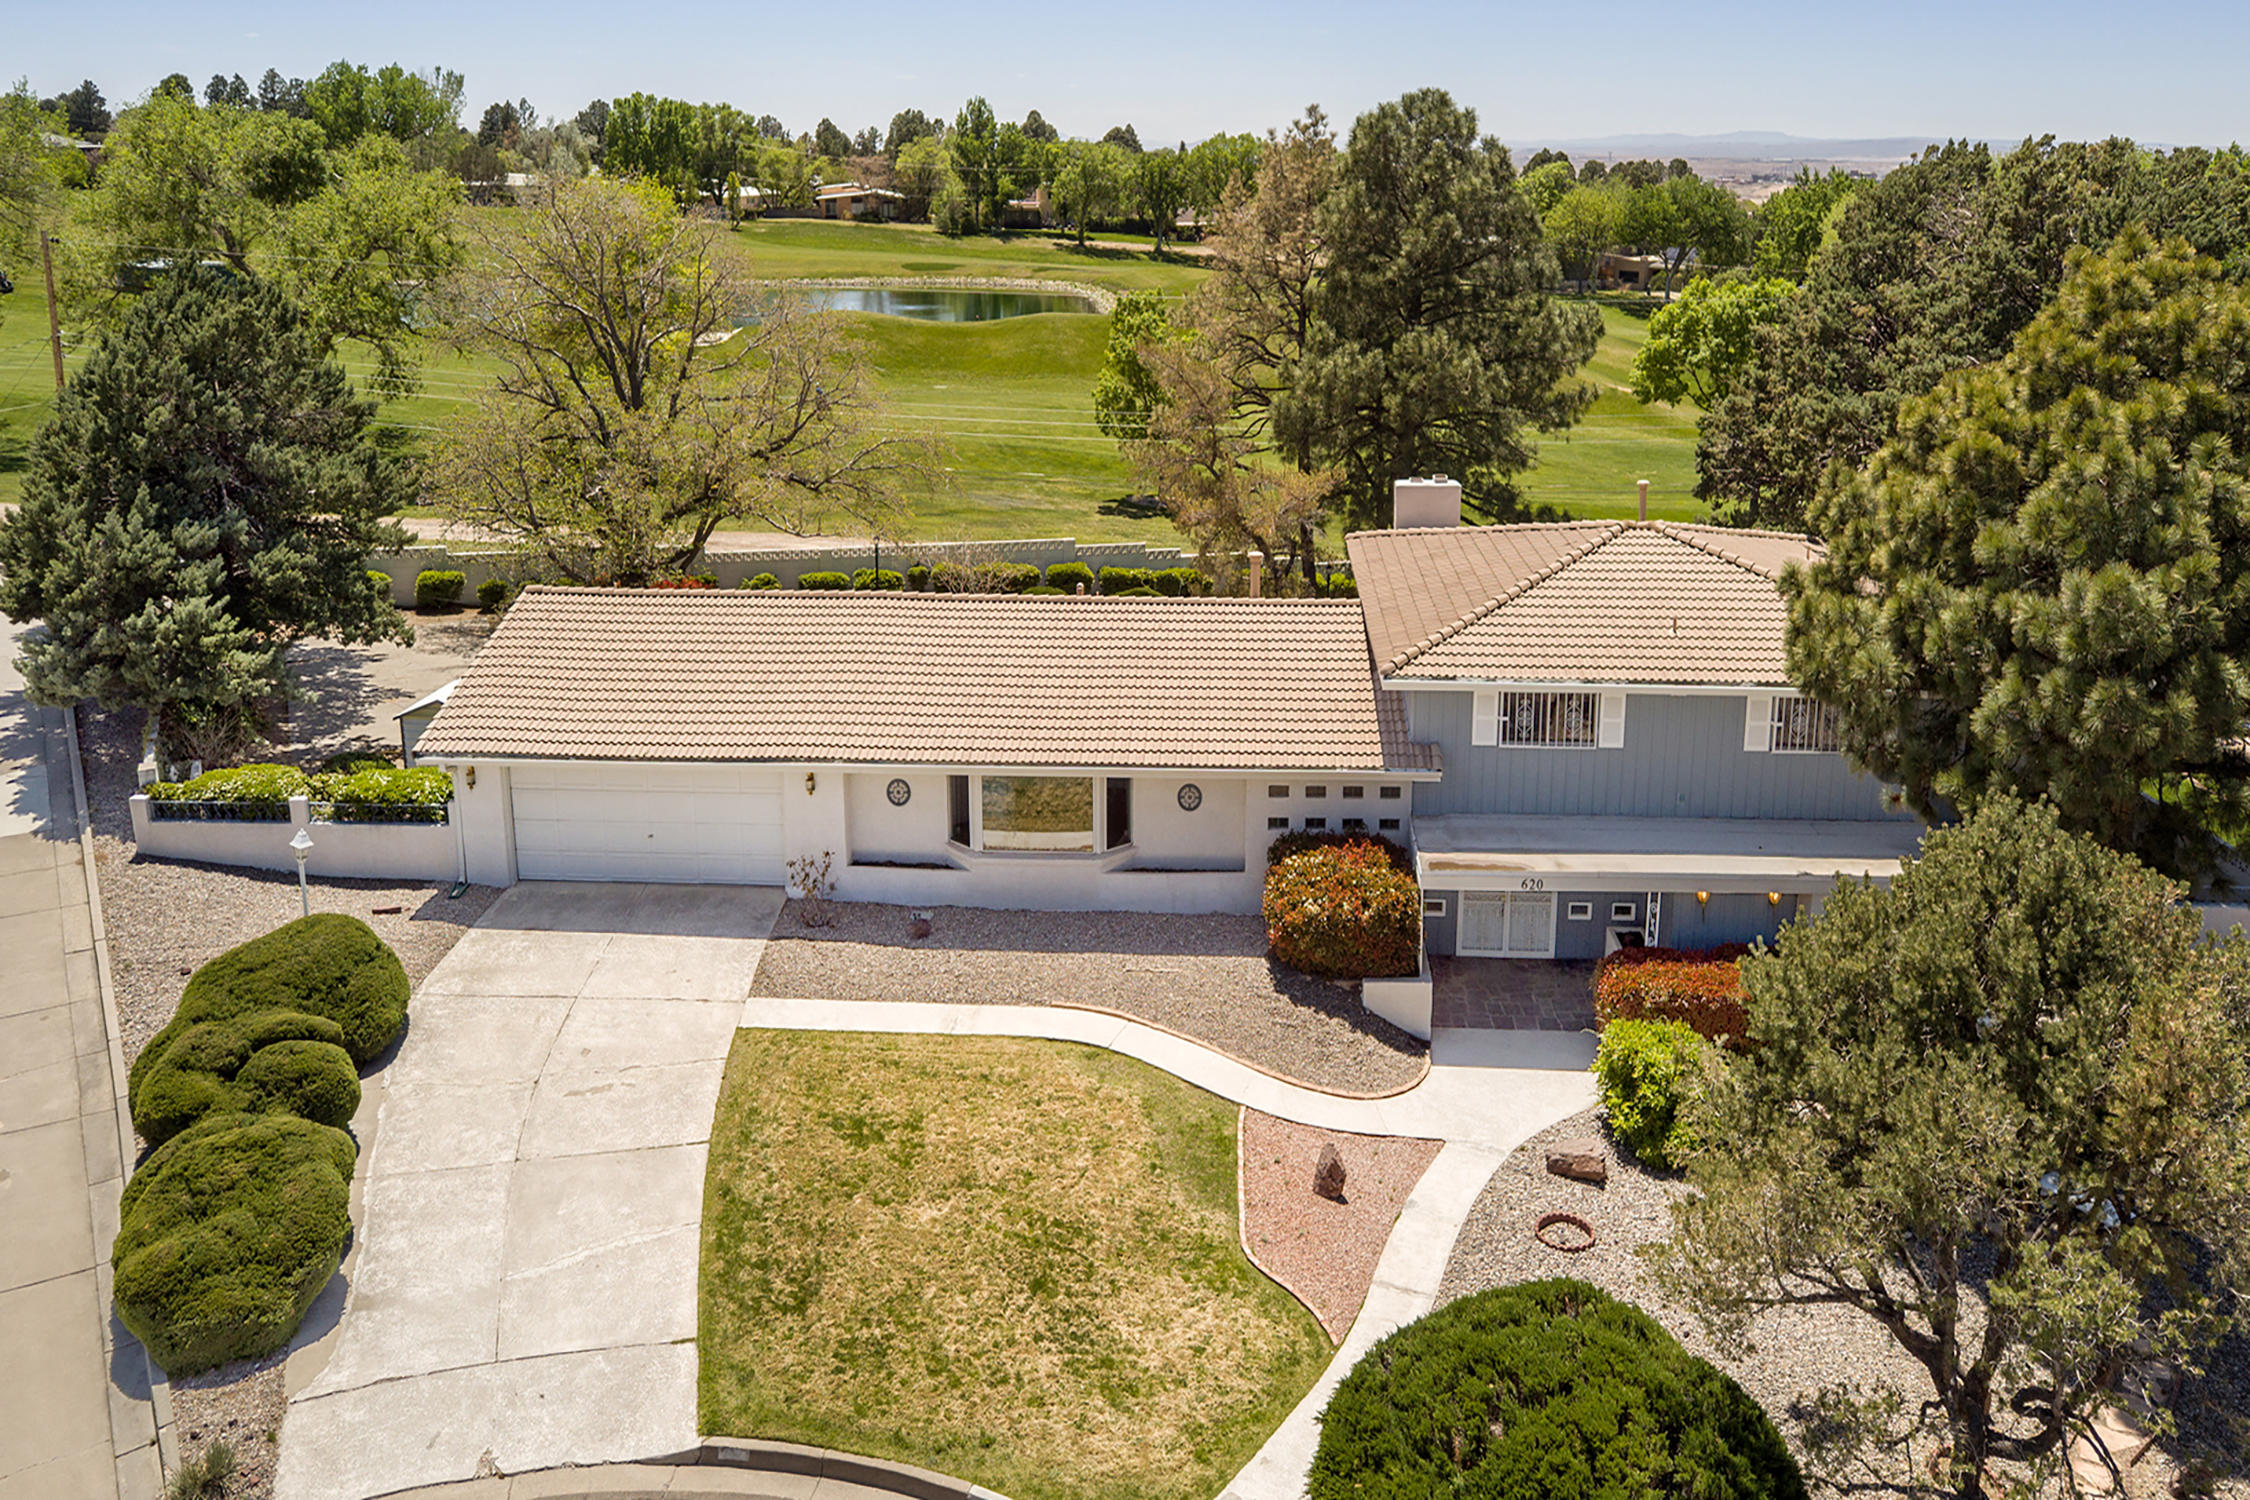 Spectacular Half Acre Golf Course  Cul-De-Sac Lot! * 4500+ Total Footage - ~3700 Above Grade Plus An Awesome Finished Basement * Expansive Floor Plan Includes Three Living Areas Plus a Den/Office/Study with a Bath * Eat-In Kitchen with Amazing Storage + Sub Zero Refrigerator * Upstairs Bedroom Wing Includes a Primary Suite with a Deck Looking Out Over the Golf Course and Three Separate Closets! *  Bedroom and Bath on Entry Level Could Be a Nice Guest Suite *  Use the Den/Office as a Bedroom for an Optional Second Guest Suite * Wood Floors in the Living Room and Dining Room * Great Mountain Views Out the Living Room Picture Window * Family Room with Bar and Sliders Out to the Back Yard * Basement Would Make an Amazing Media Room/Theatre * Endless Possibilities with This Special Property!